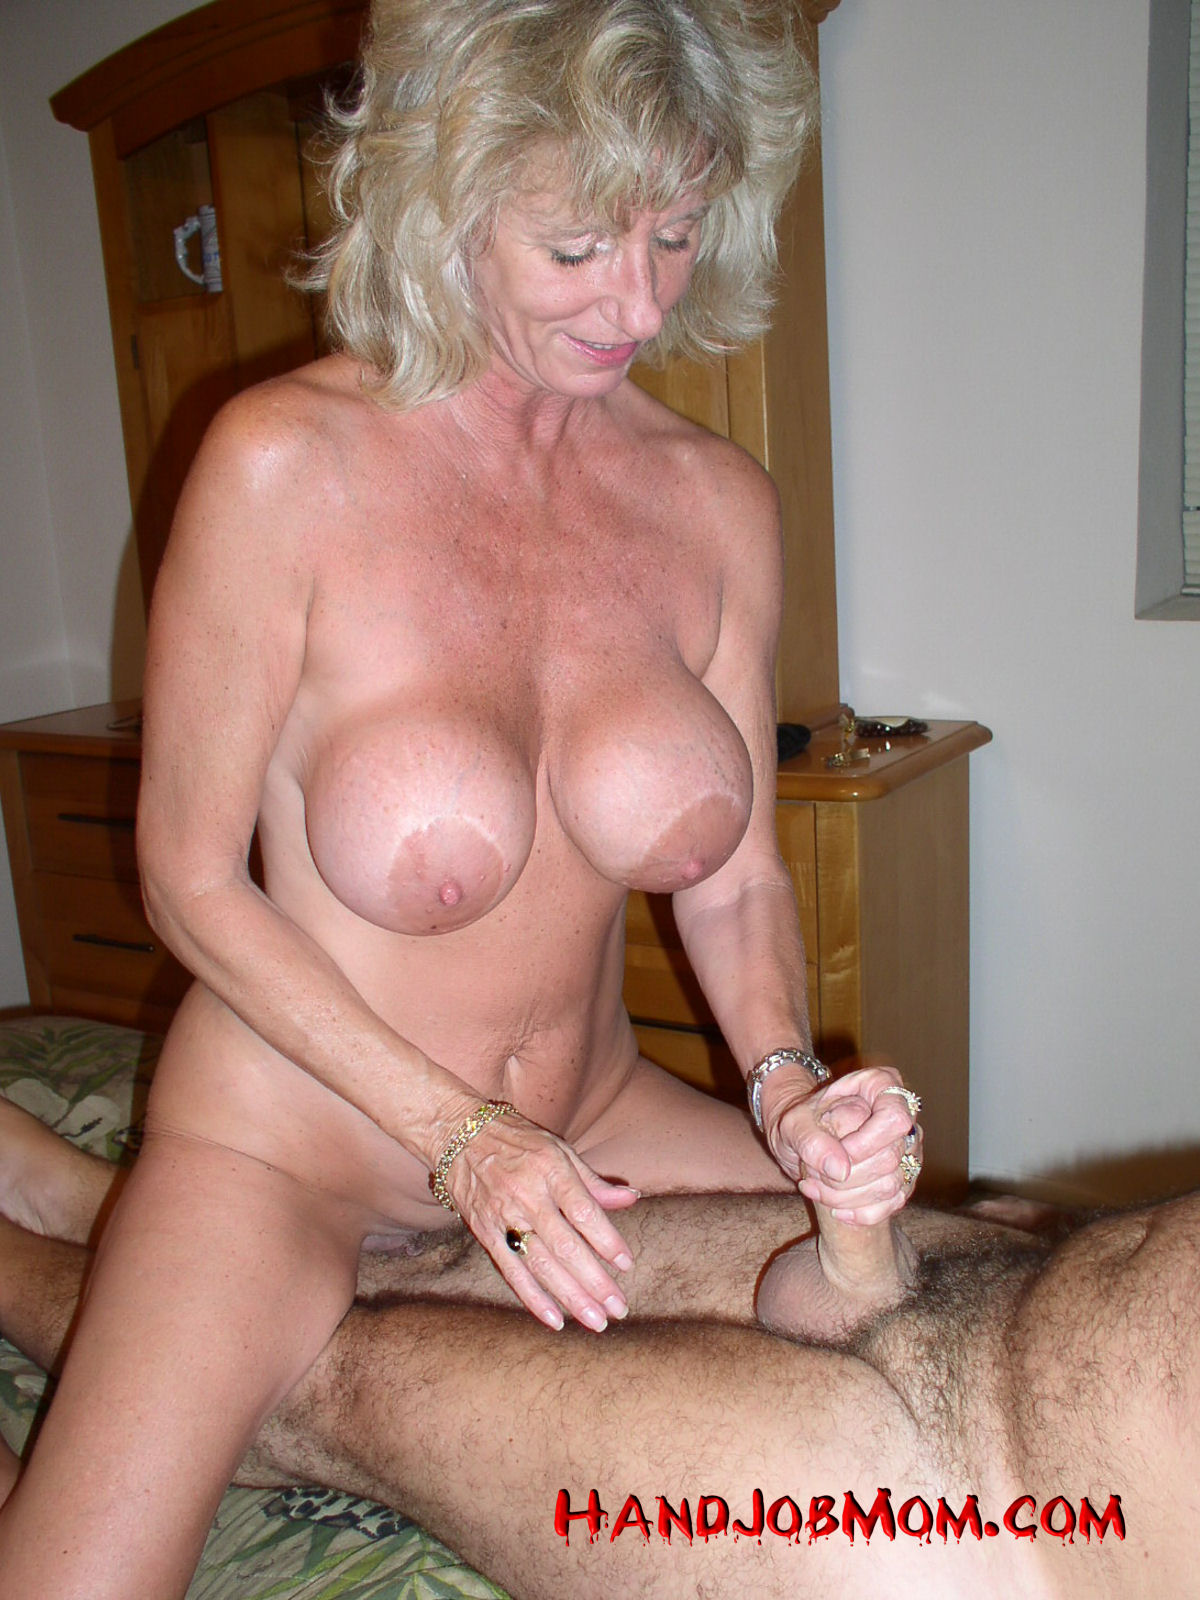 Apologise, but, Hand job mom video thanks